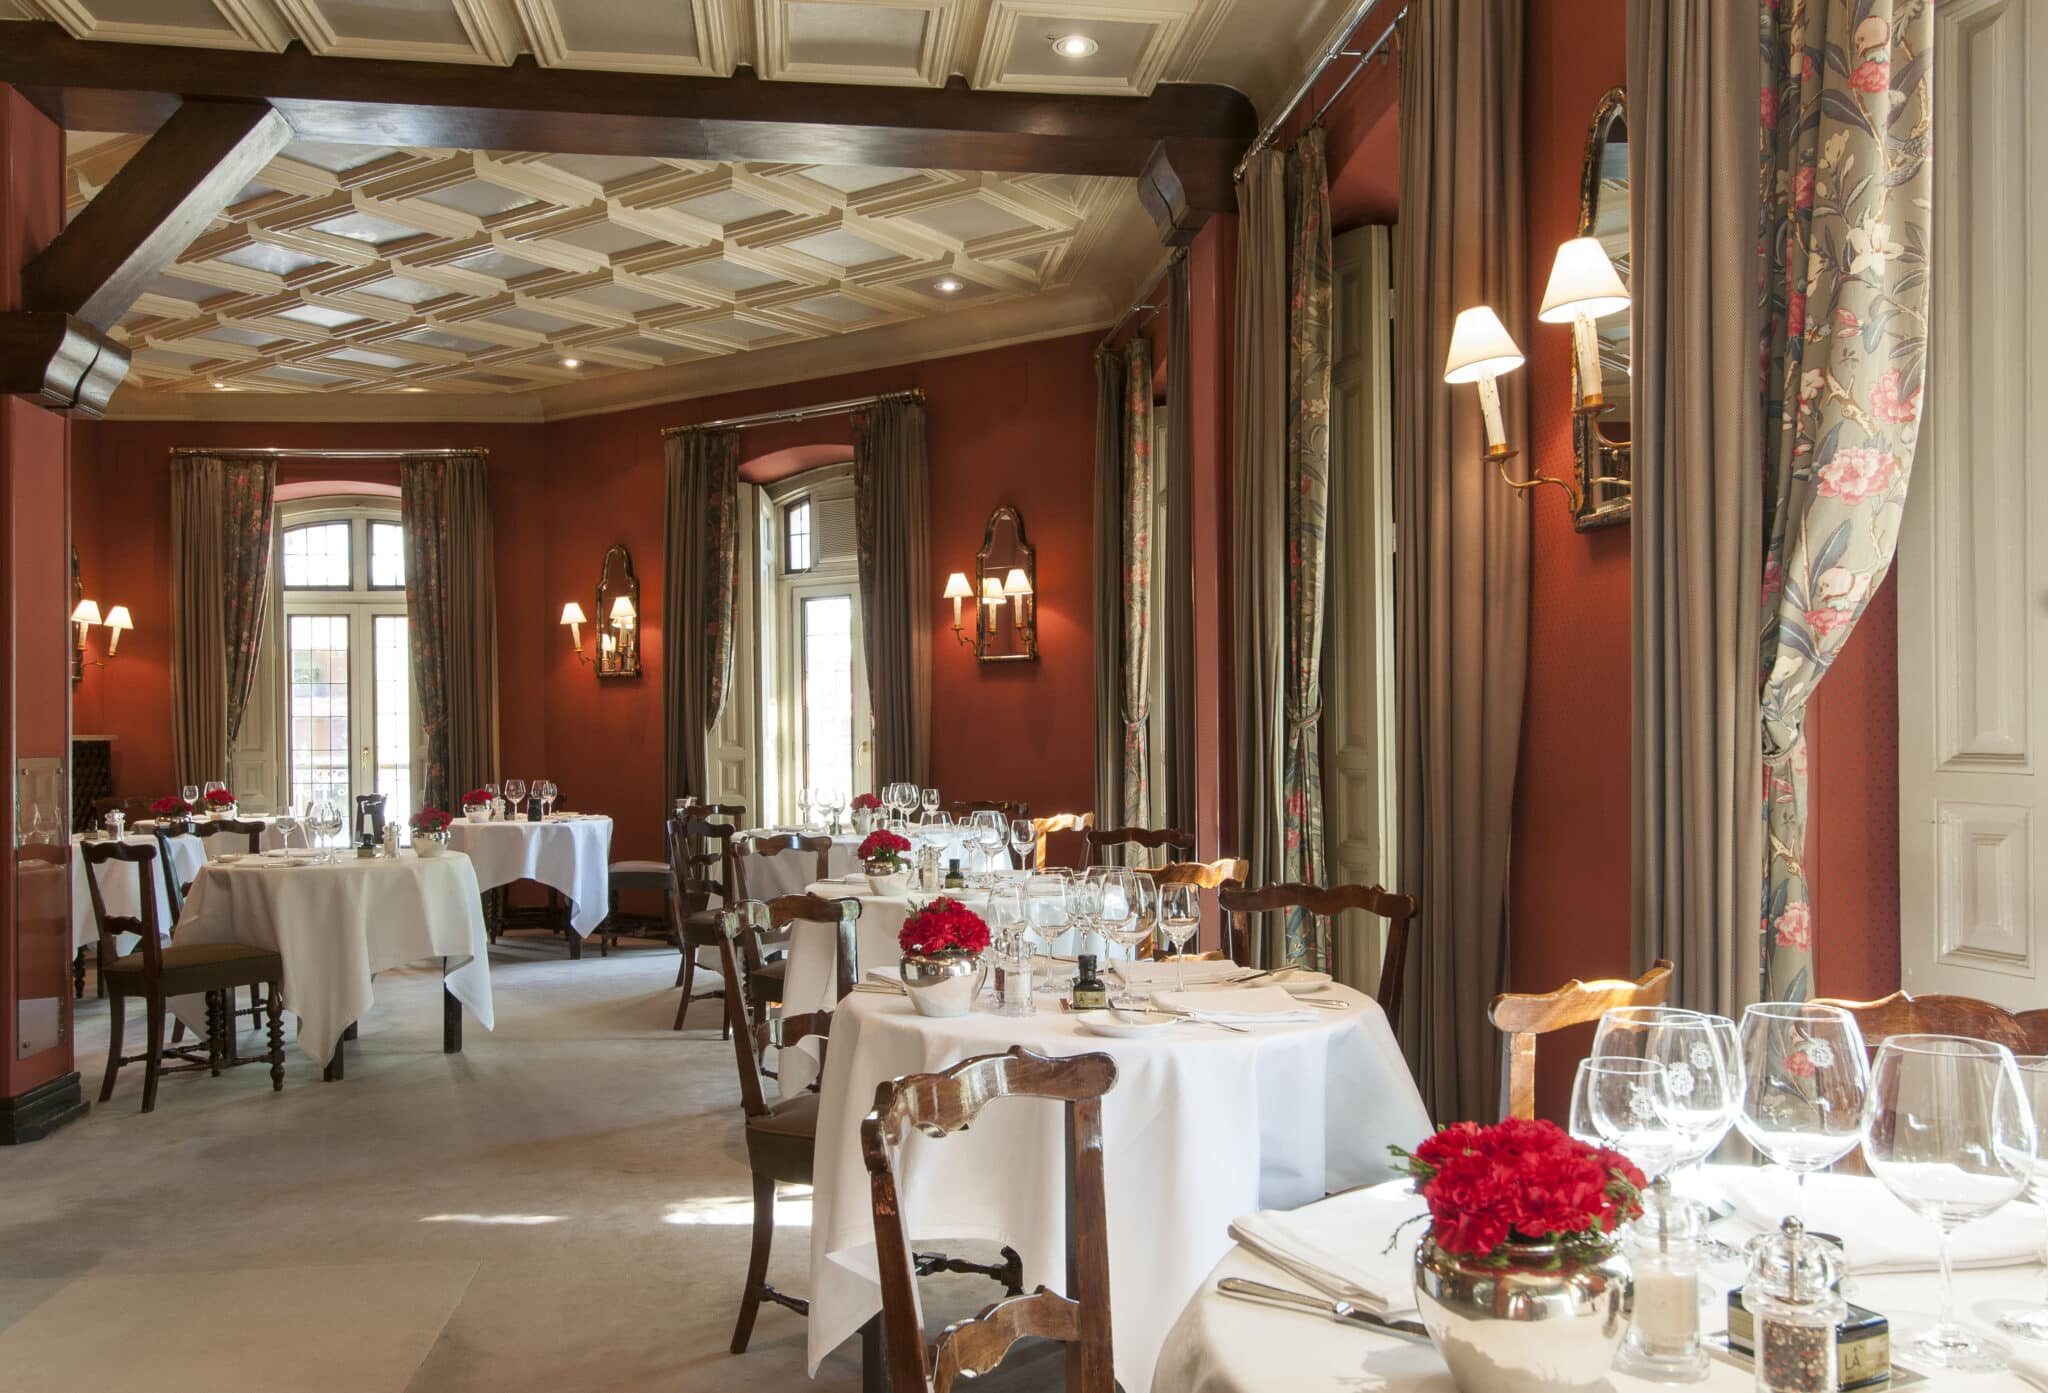 Horcher, gastronomic luxury to give away in the Madrid of Salvador Dalí and Sophia Loren